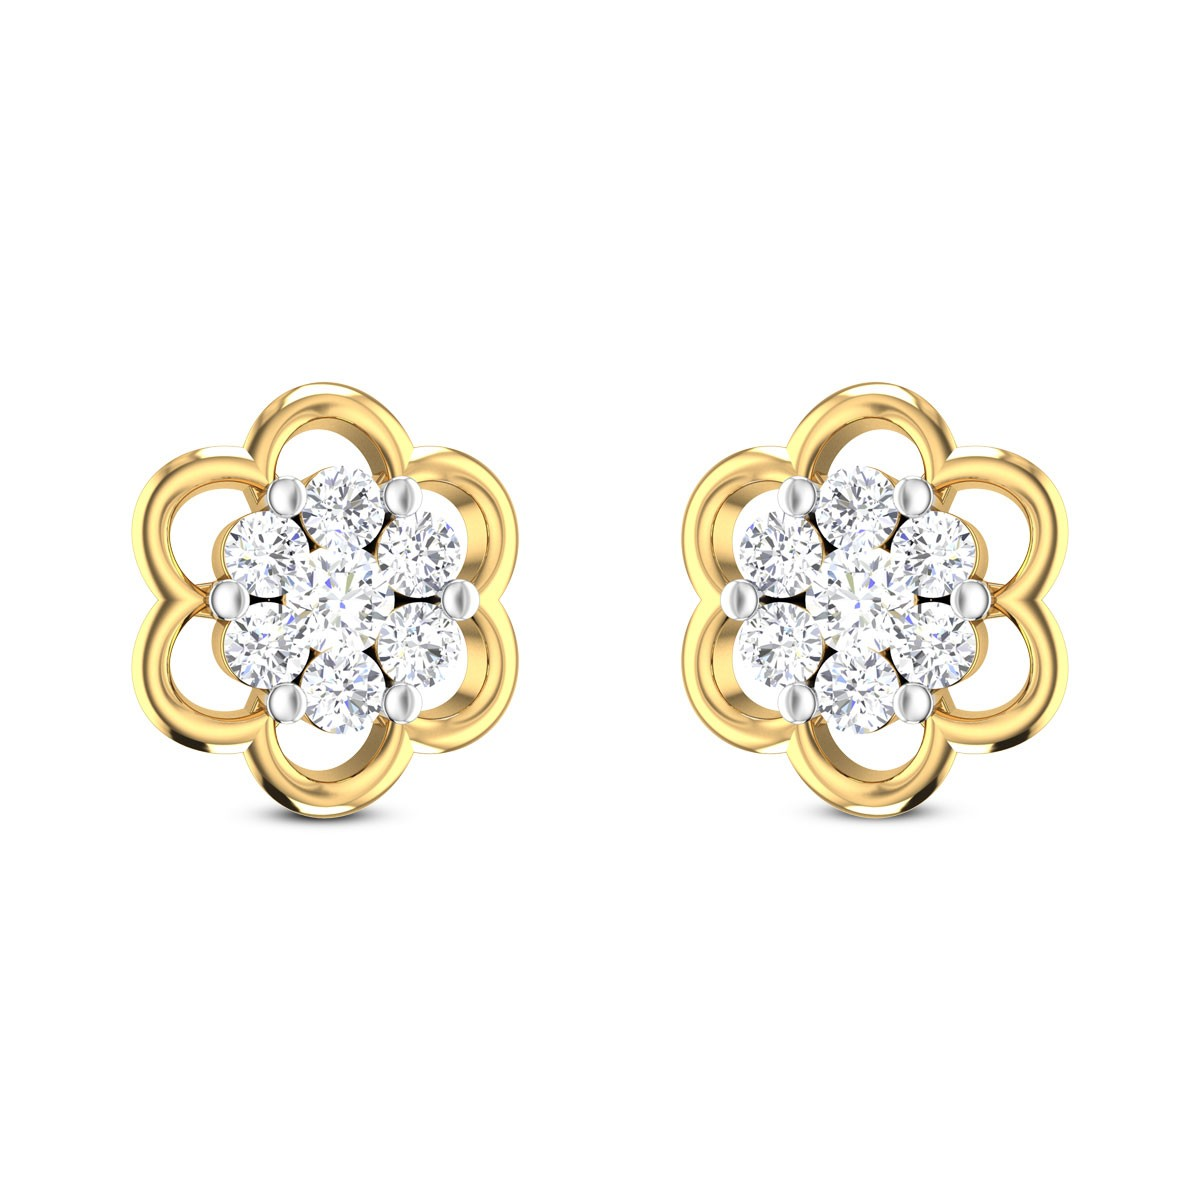 Caprice Diamond Earrings